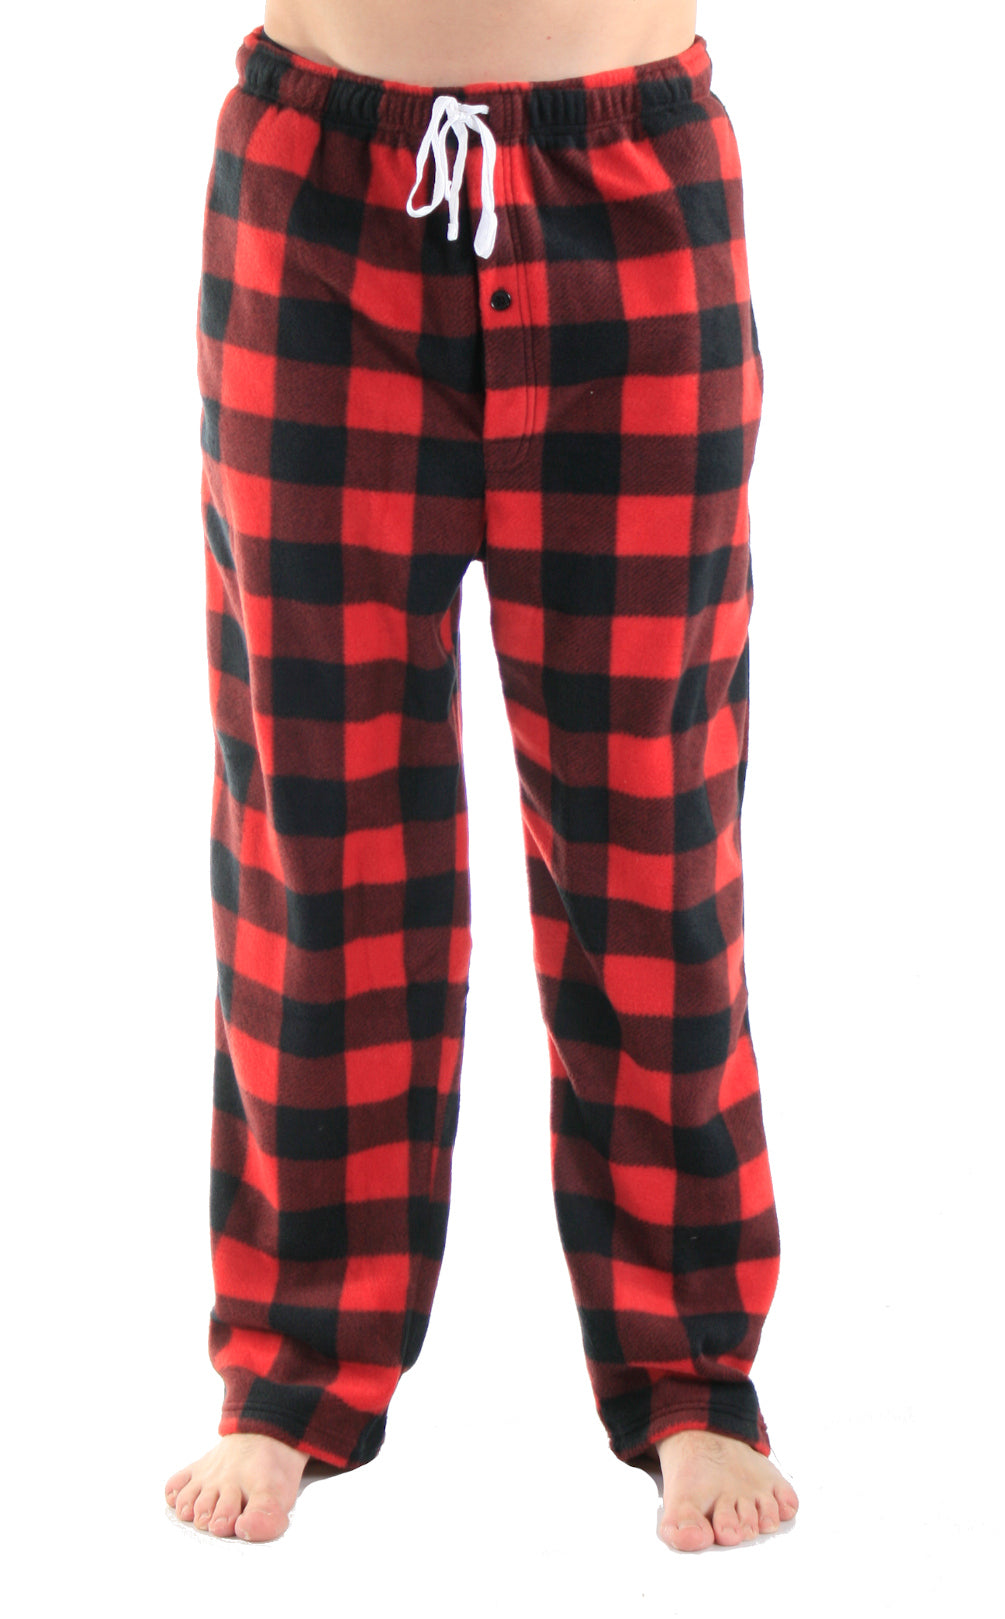 Men's Fleece Pants - Red Plaid